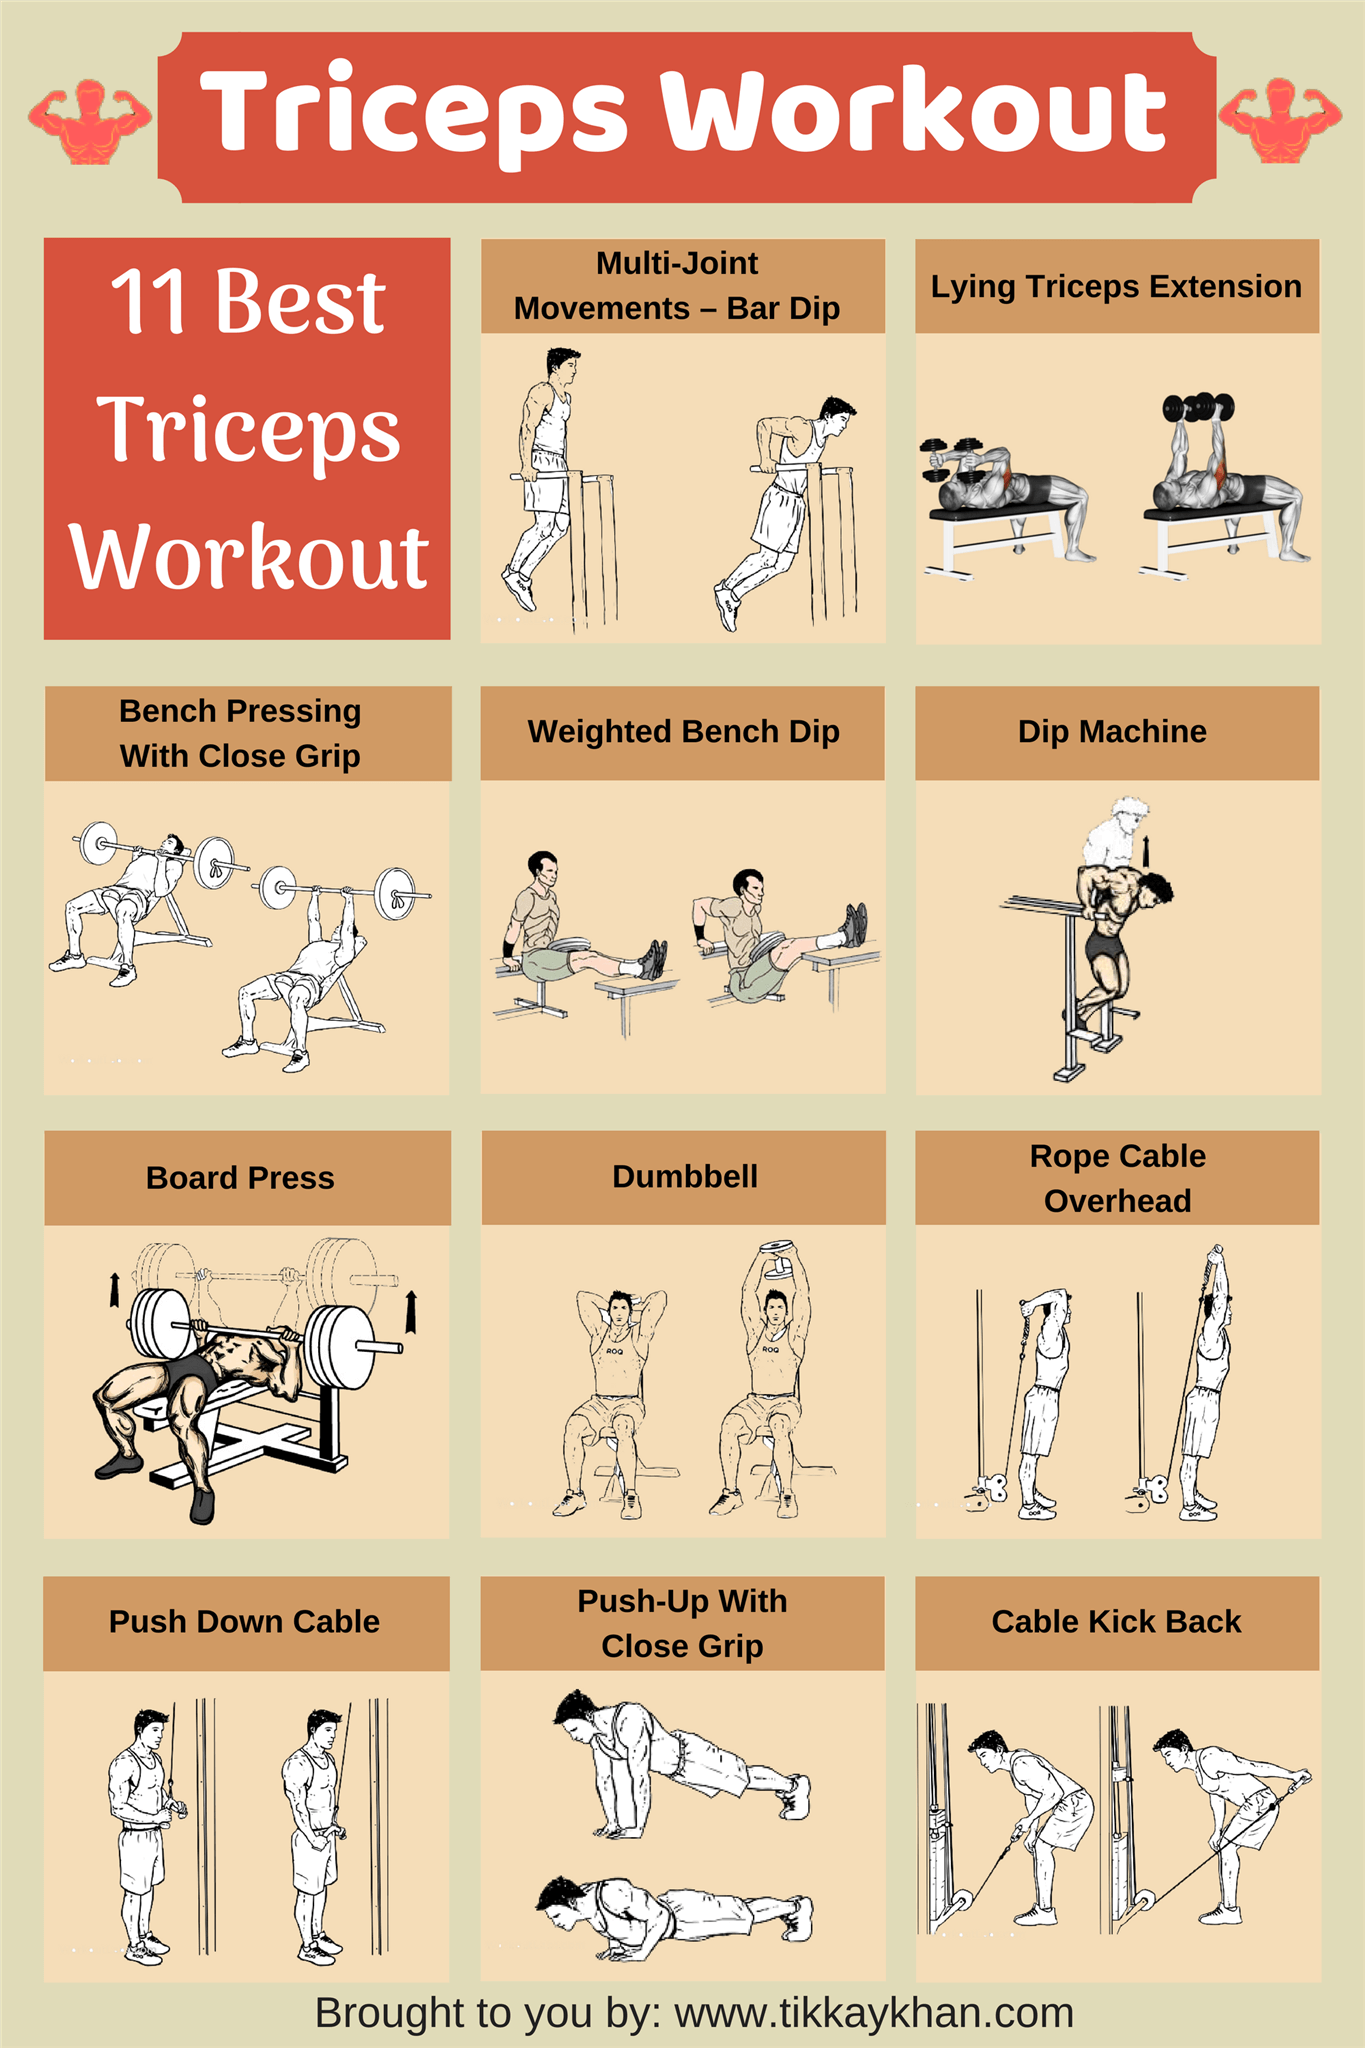 Pin on triceps workout